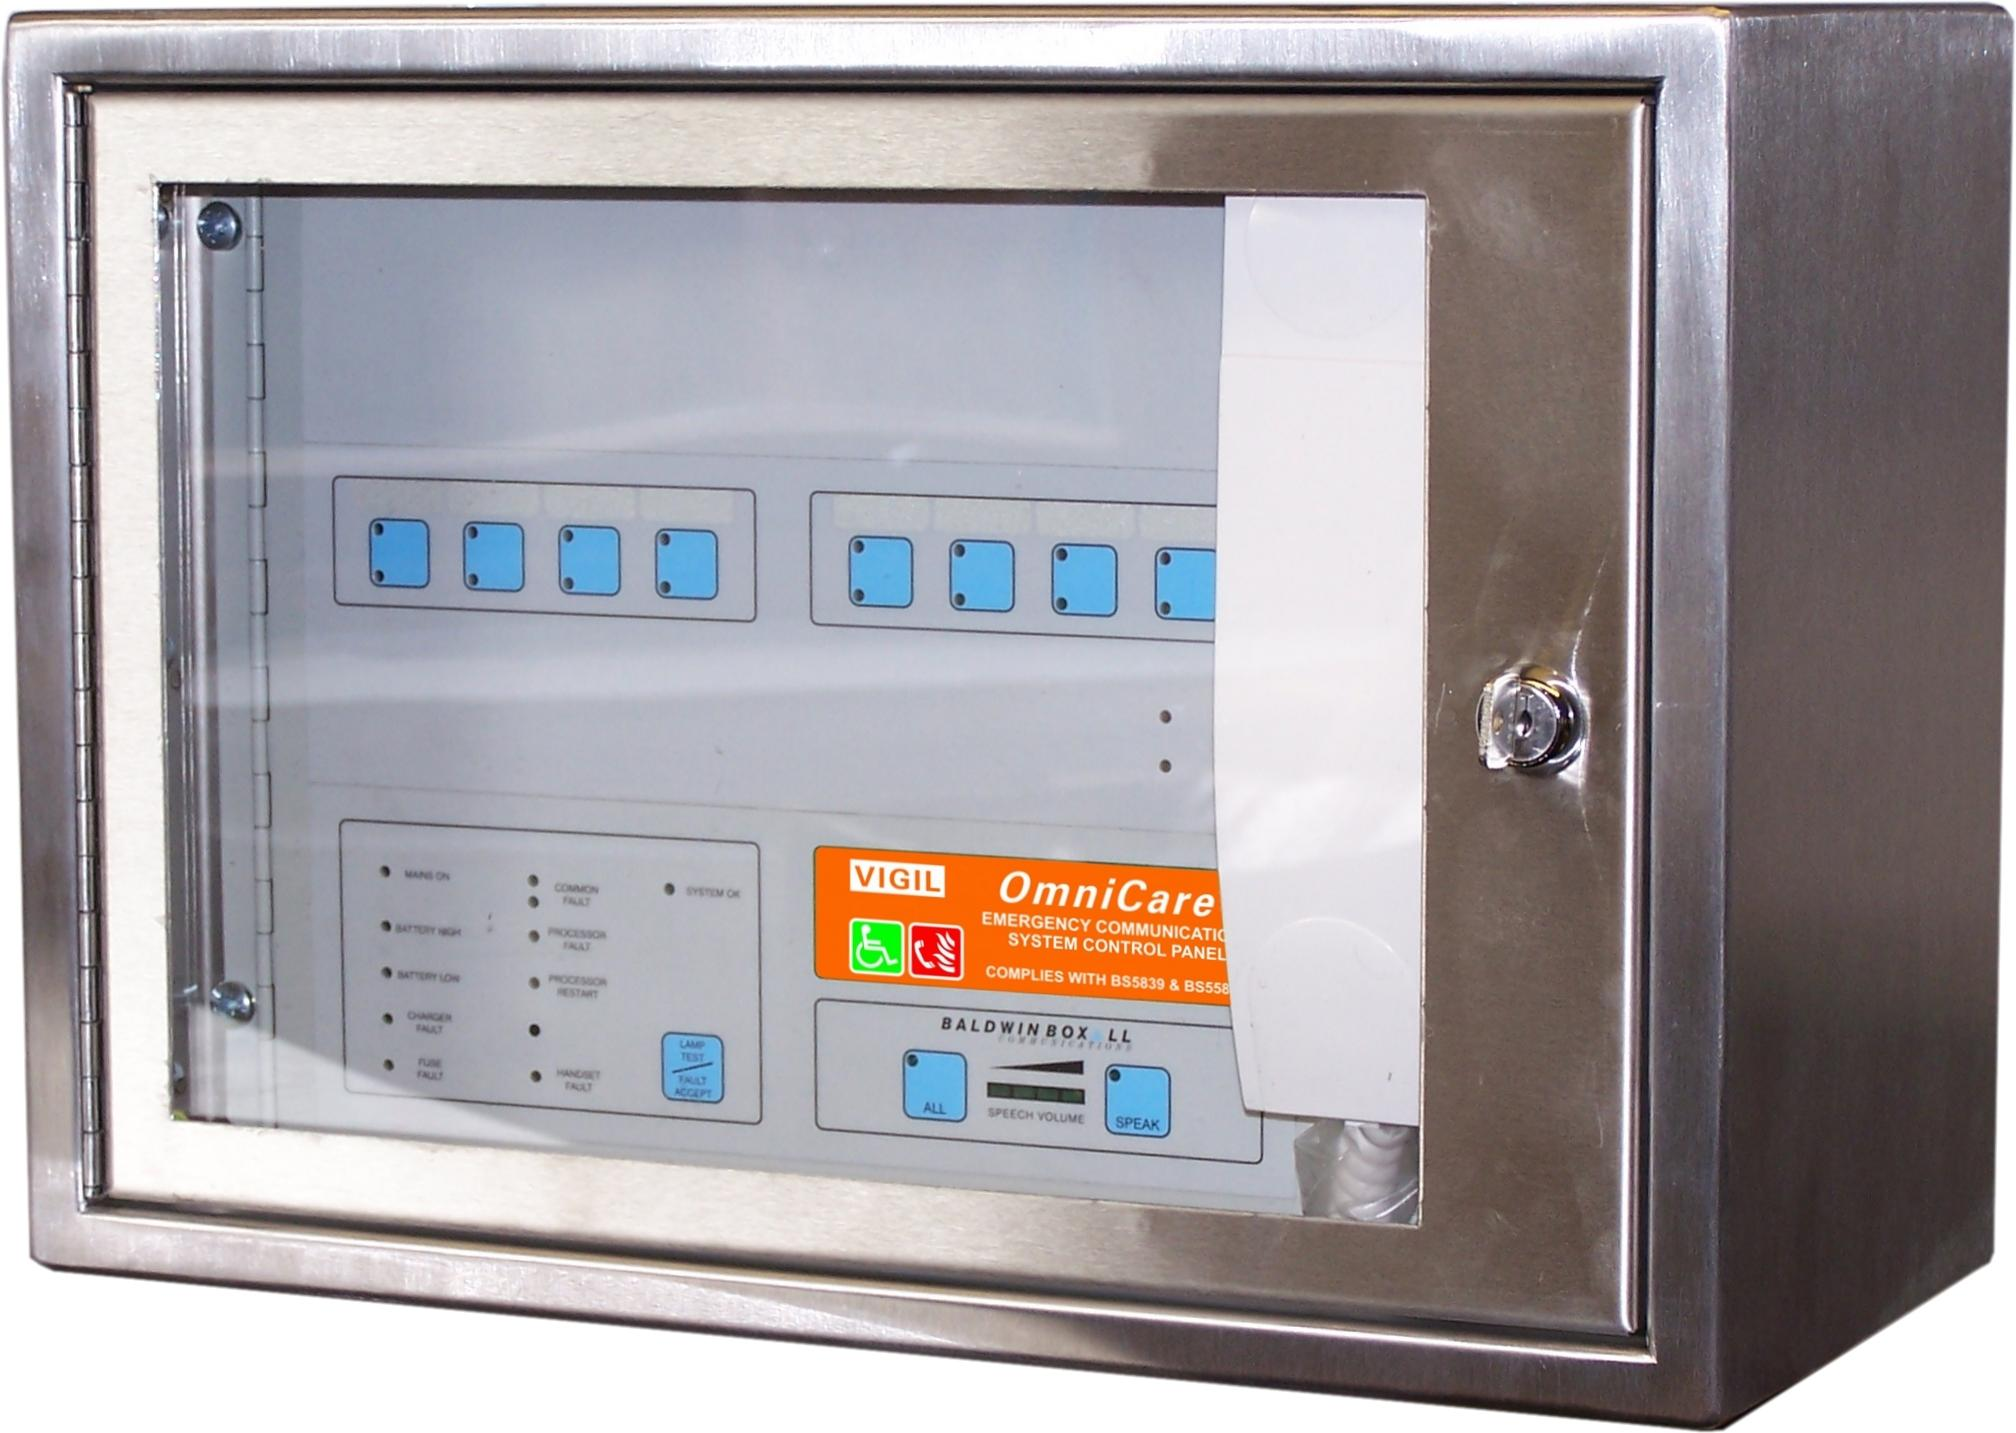 PAI Group Web Shop | Baldwin Boxall OmniCare BVOC4MS Mini Master Control Panel 4-Way Stainless Steel